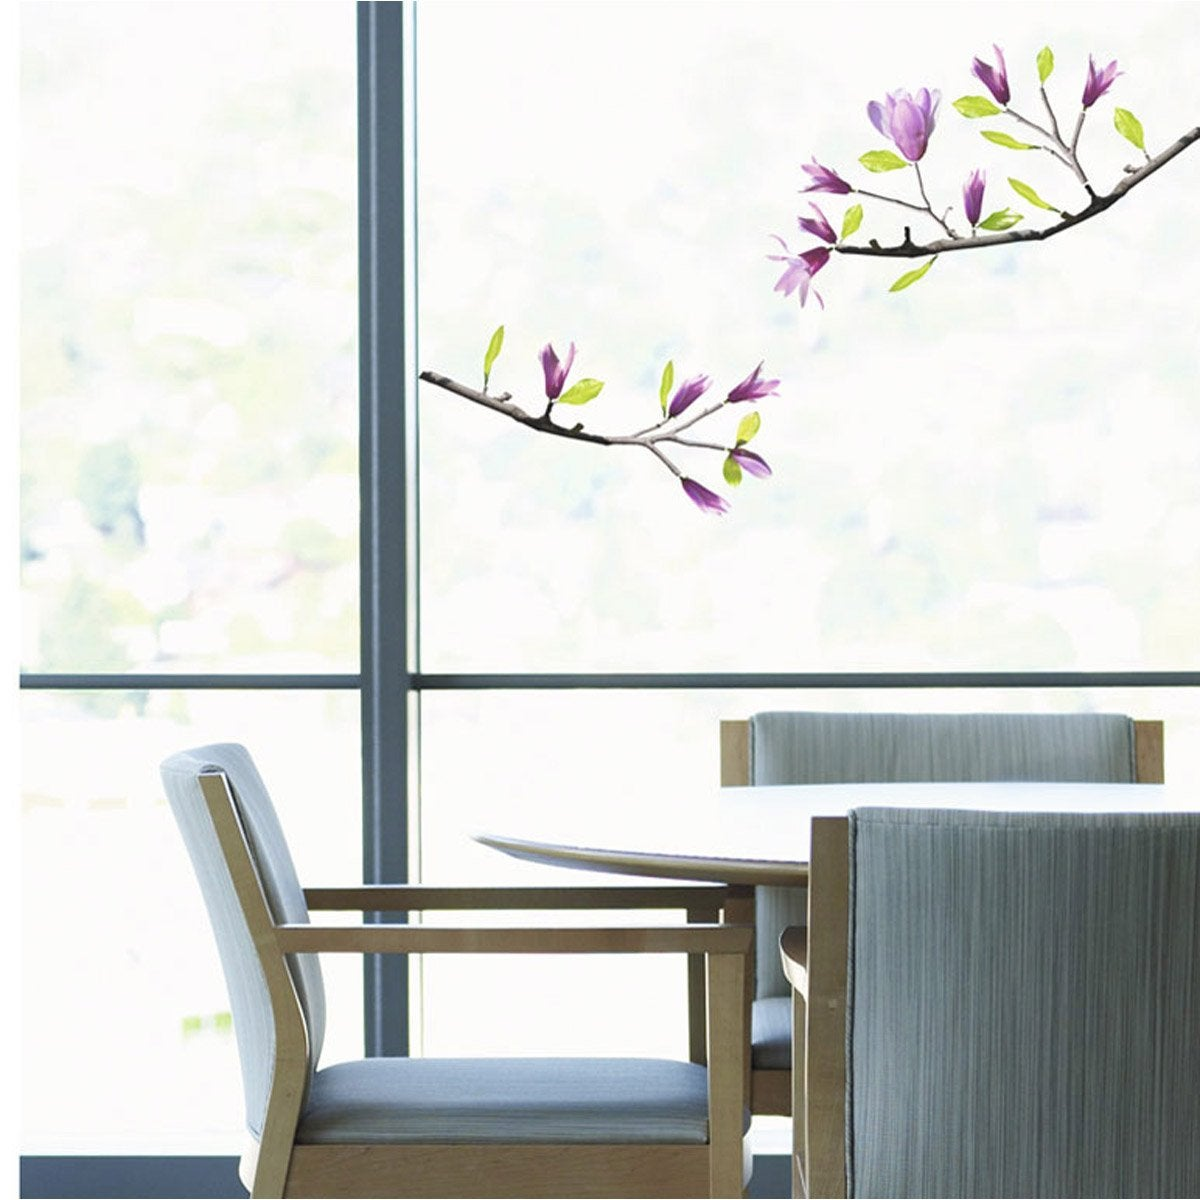 Sticker magnolia 23 5 x 67 cm leroy merlin for Stickers vitres leroy merlin